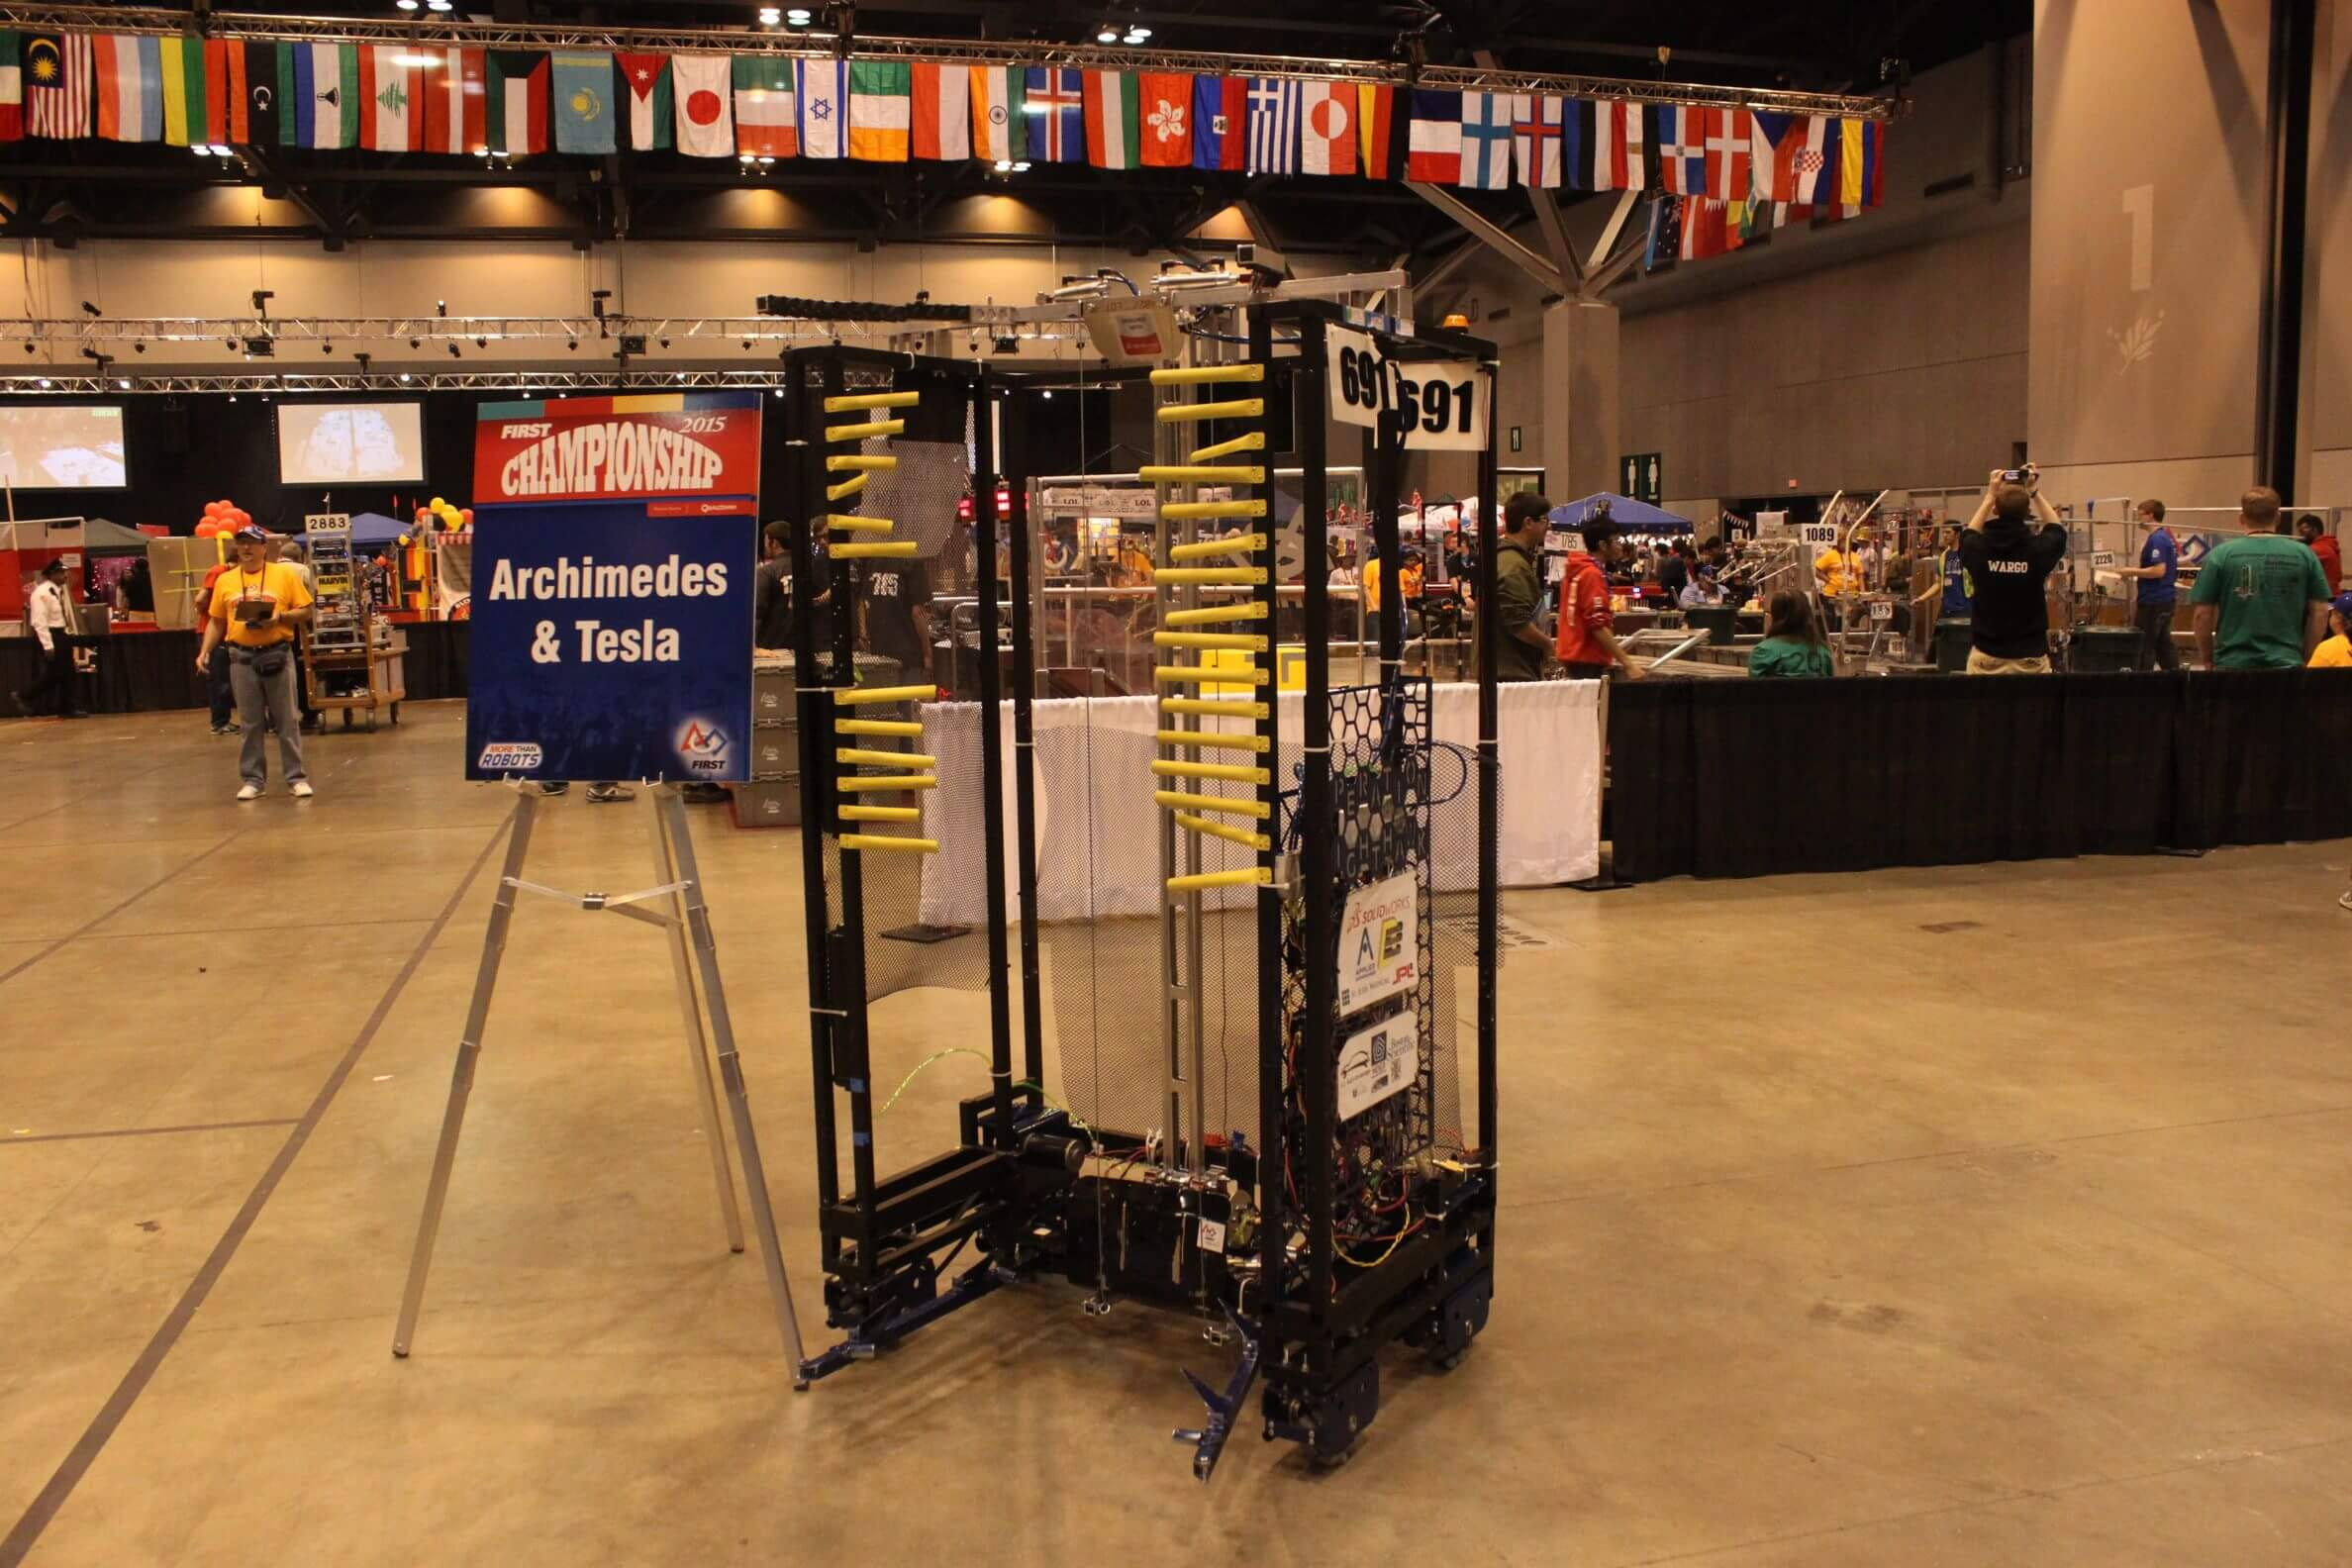 2015 FRC World Championship: Robot: Nighthawk